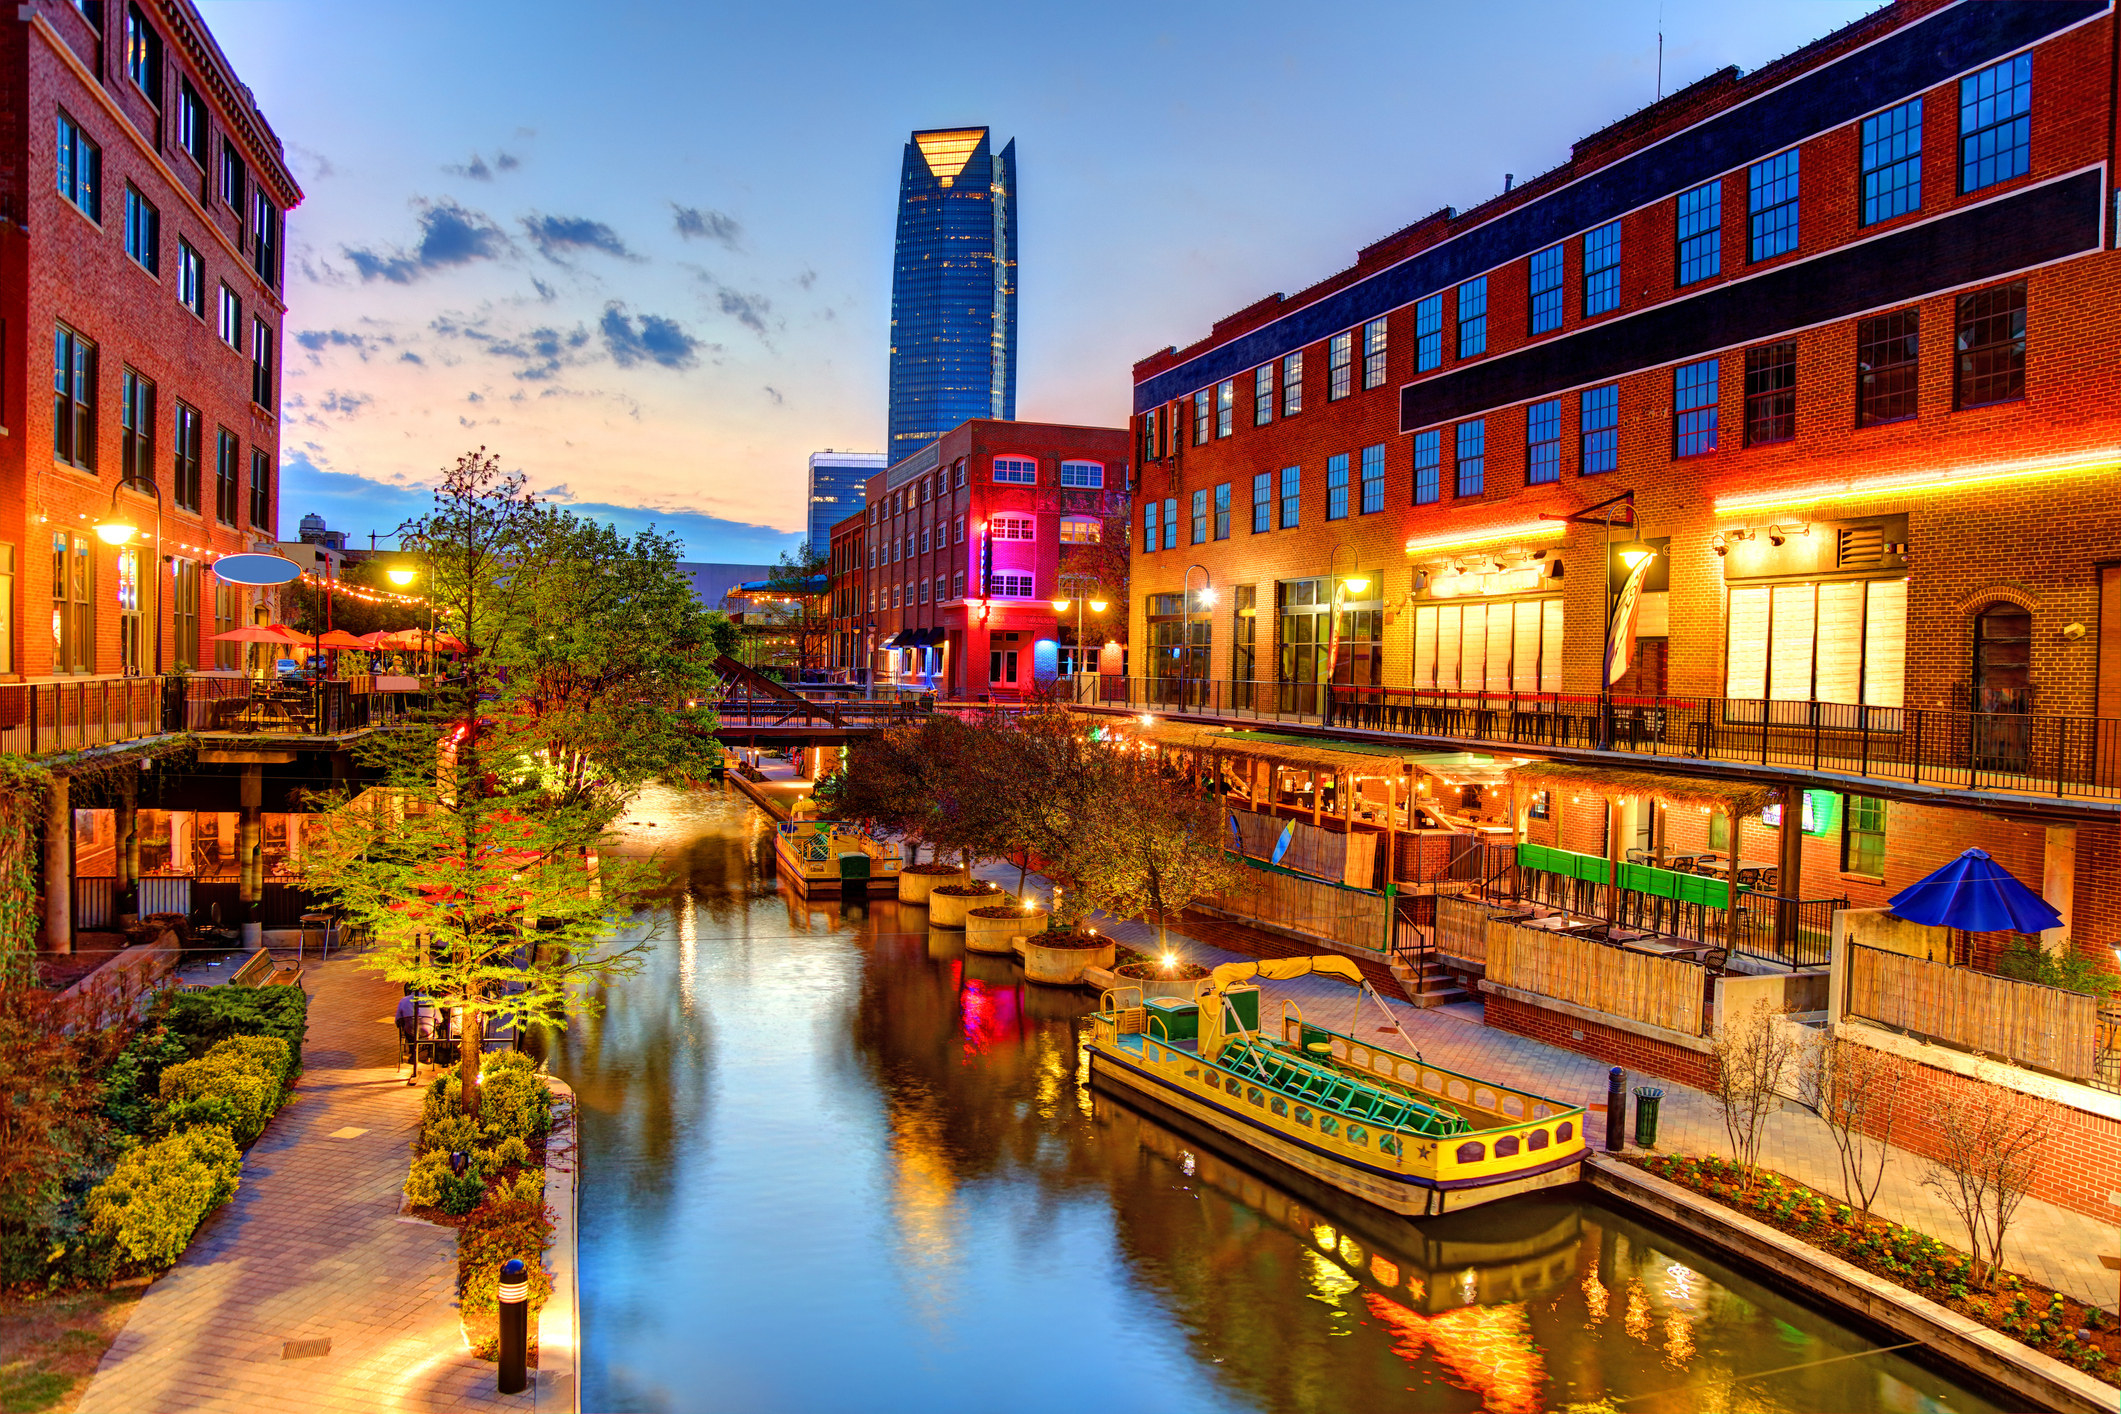 The entertainment district in Oklahoma City with a riverwalk.